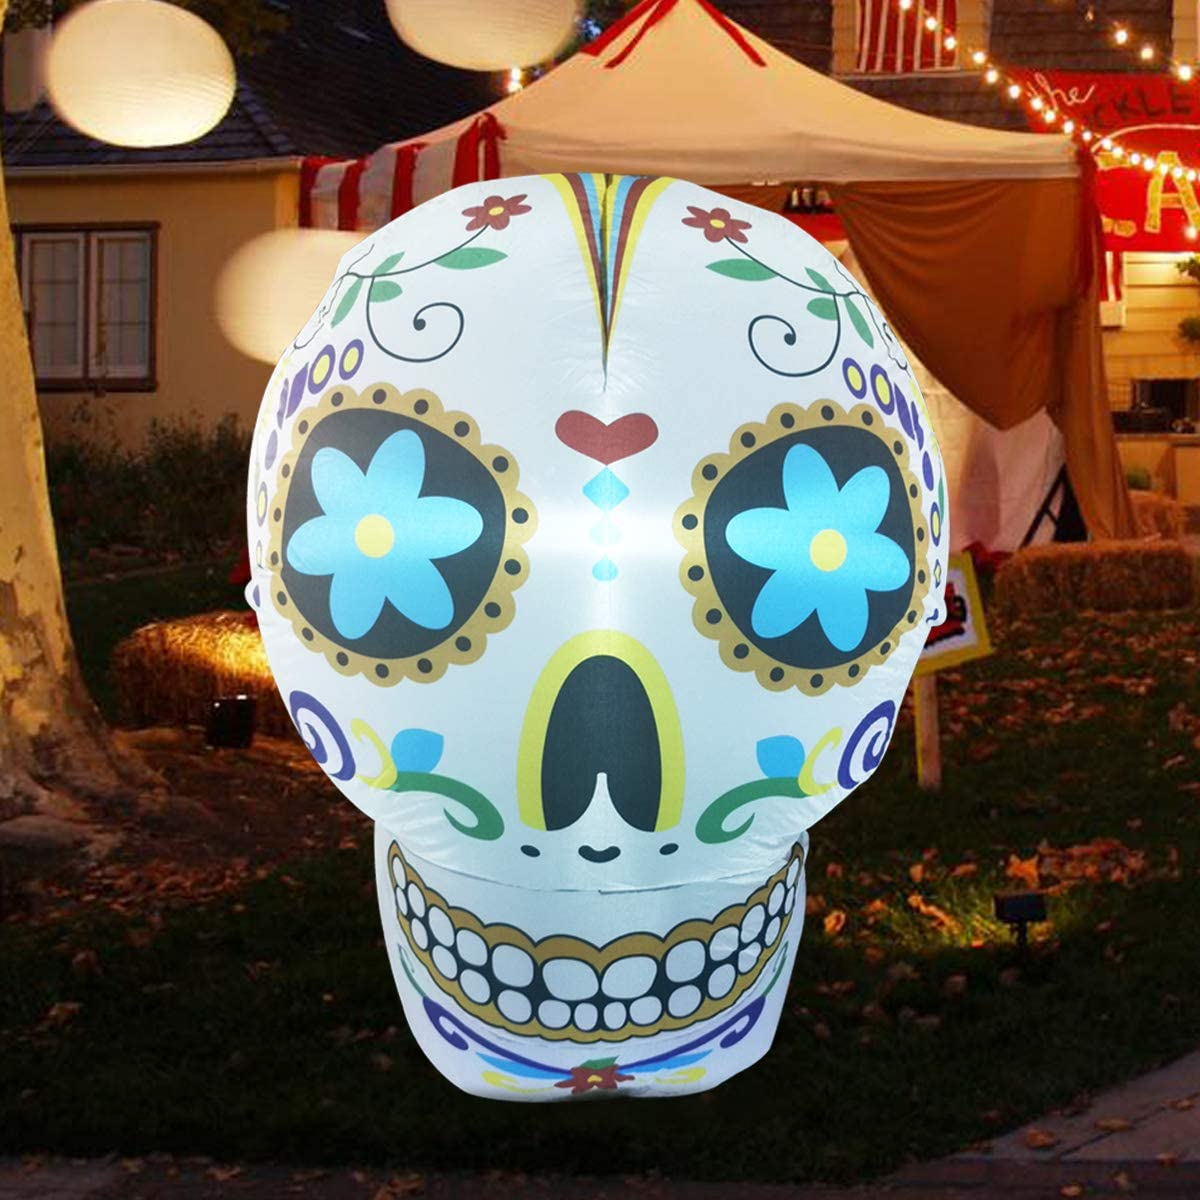 COMIN 4Foot High Christmas Inflatable Skull Blow up Yard Decoration, Indoor Outdoor Garden Christmas Decoration.